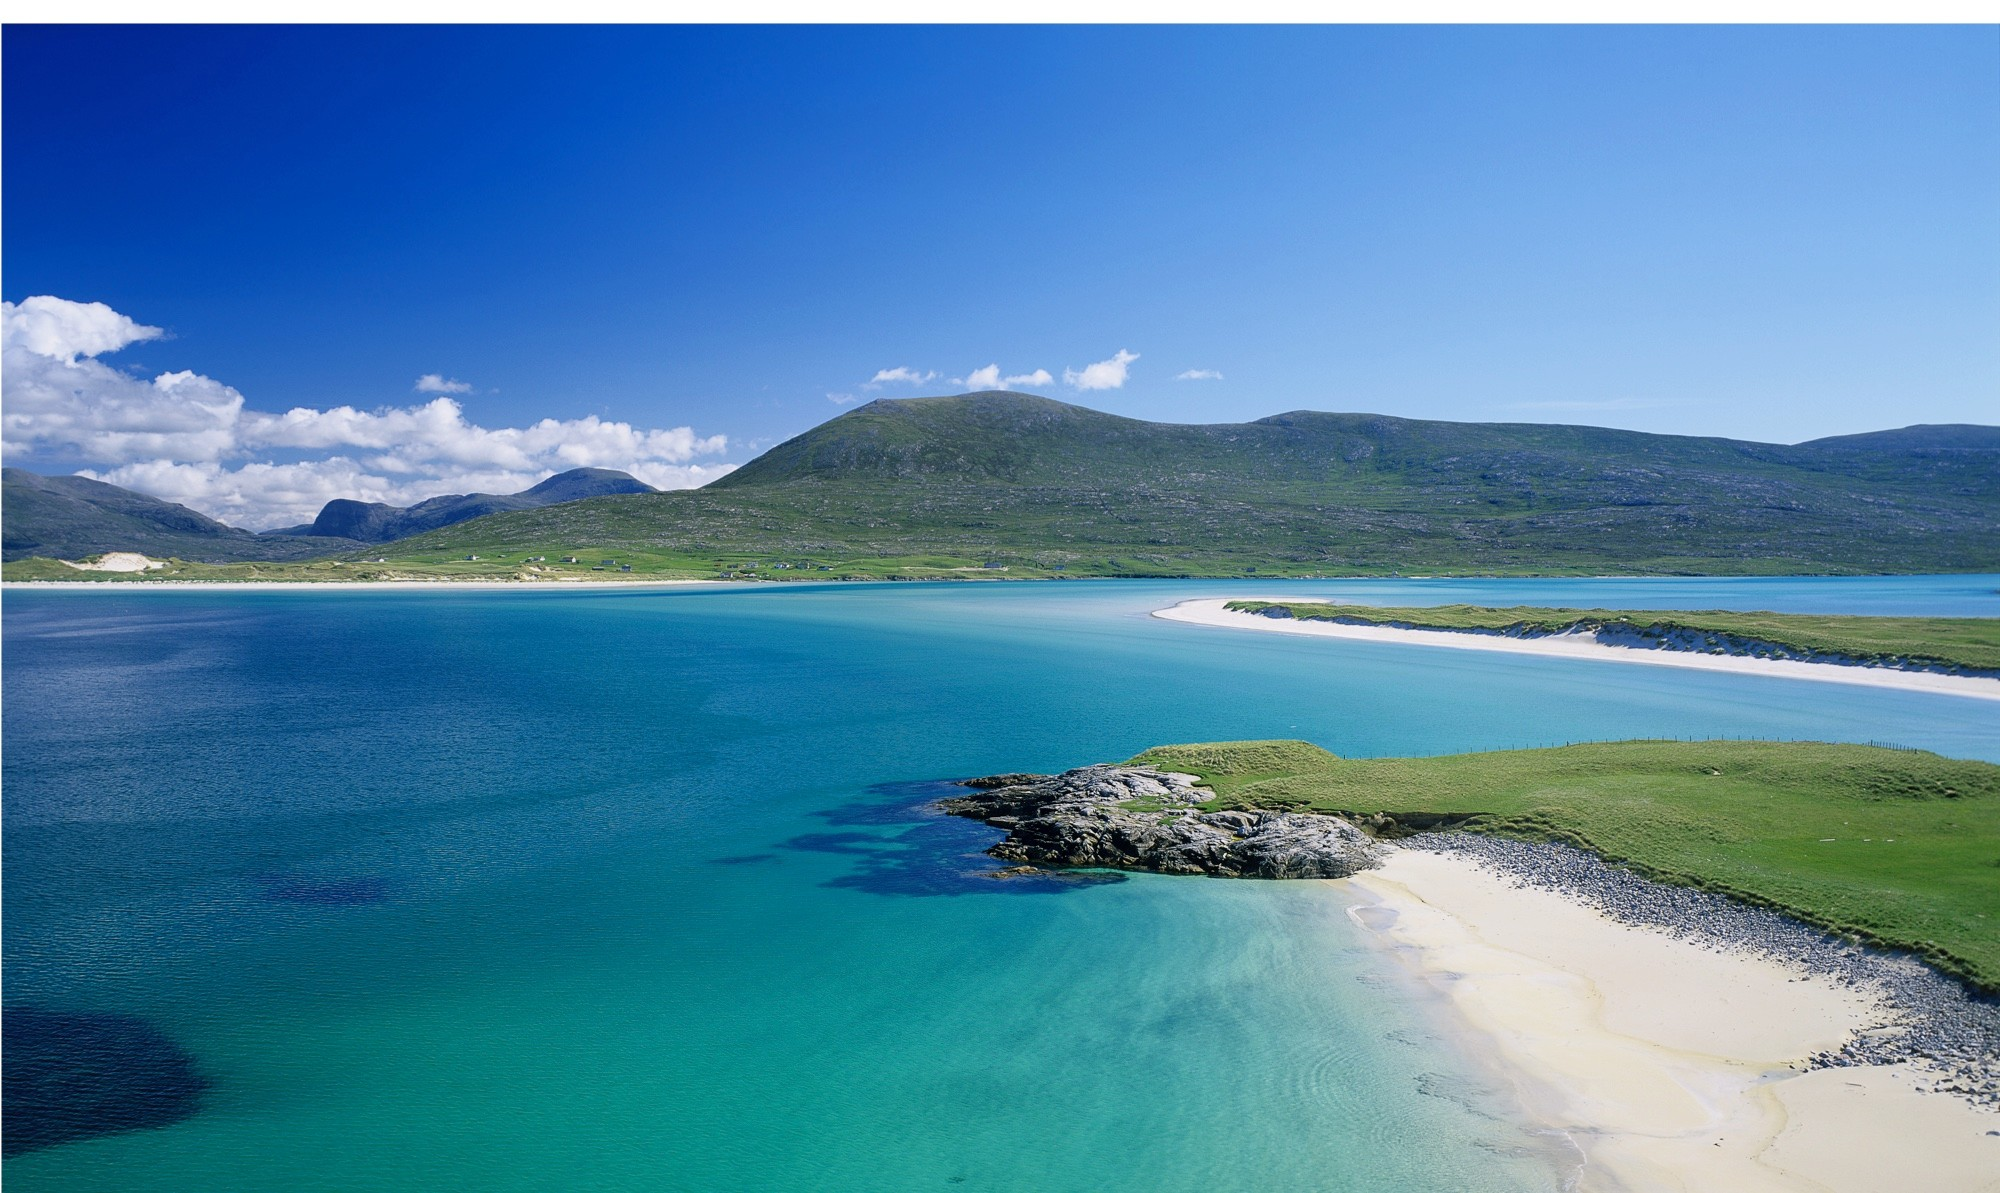 View of Harris Island on The Sound of Taransay, Western Isles, Scotland. The Outer Hebrides comprise of an chain of 30 islands off the west coast of Scotland. With visually stunning white beaches and windswept terrain the Outer Hebrides is one of the most beautiful and untouched places in the world.